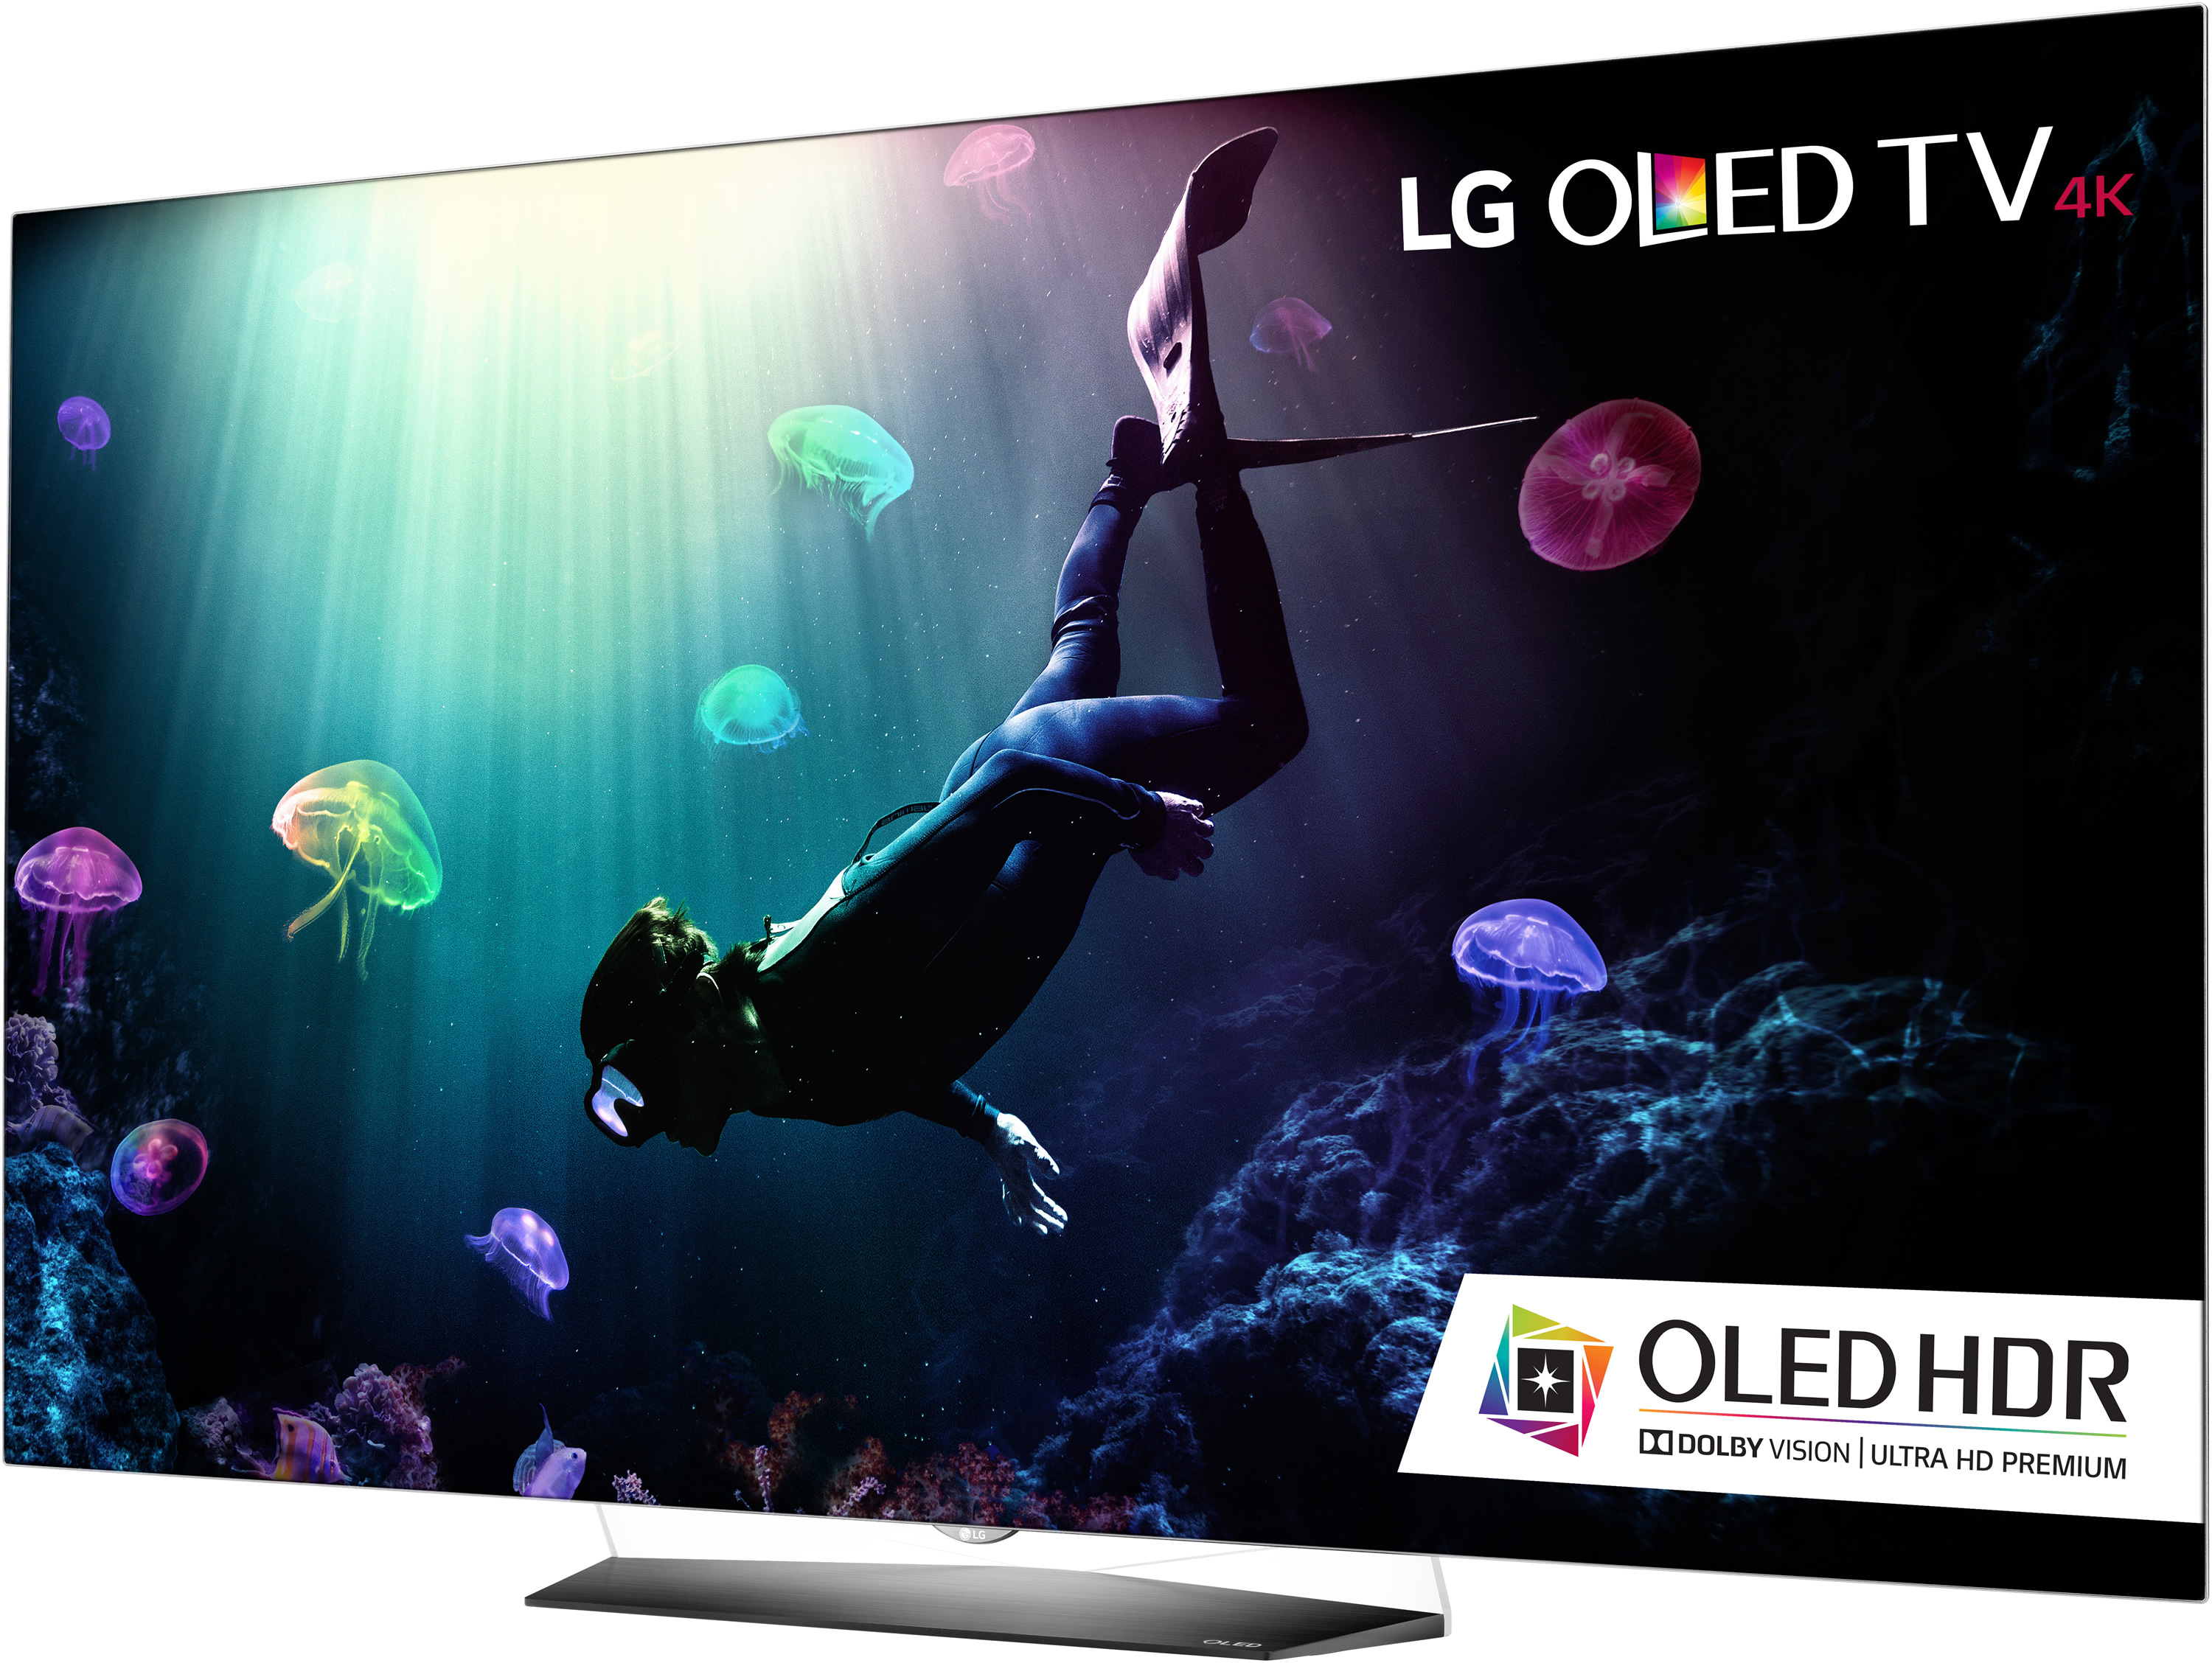 Lækker LG B6V OLED TV test : DIGITALT.TV KC-13